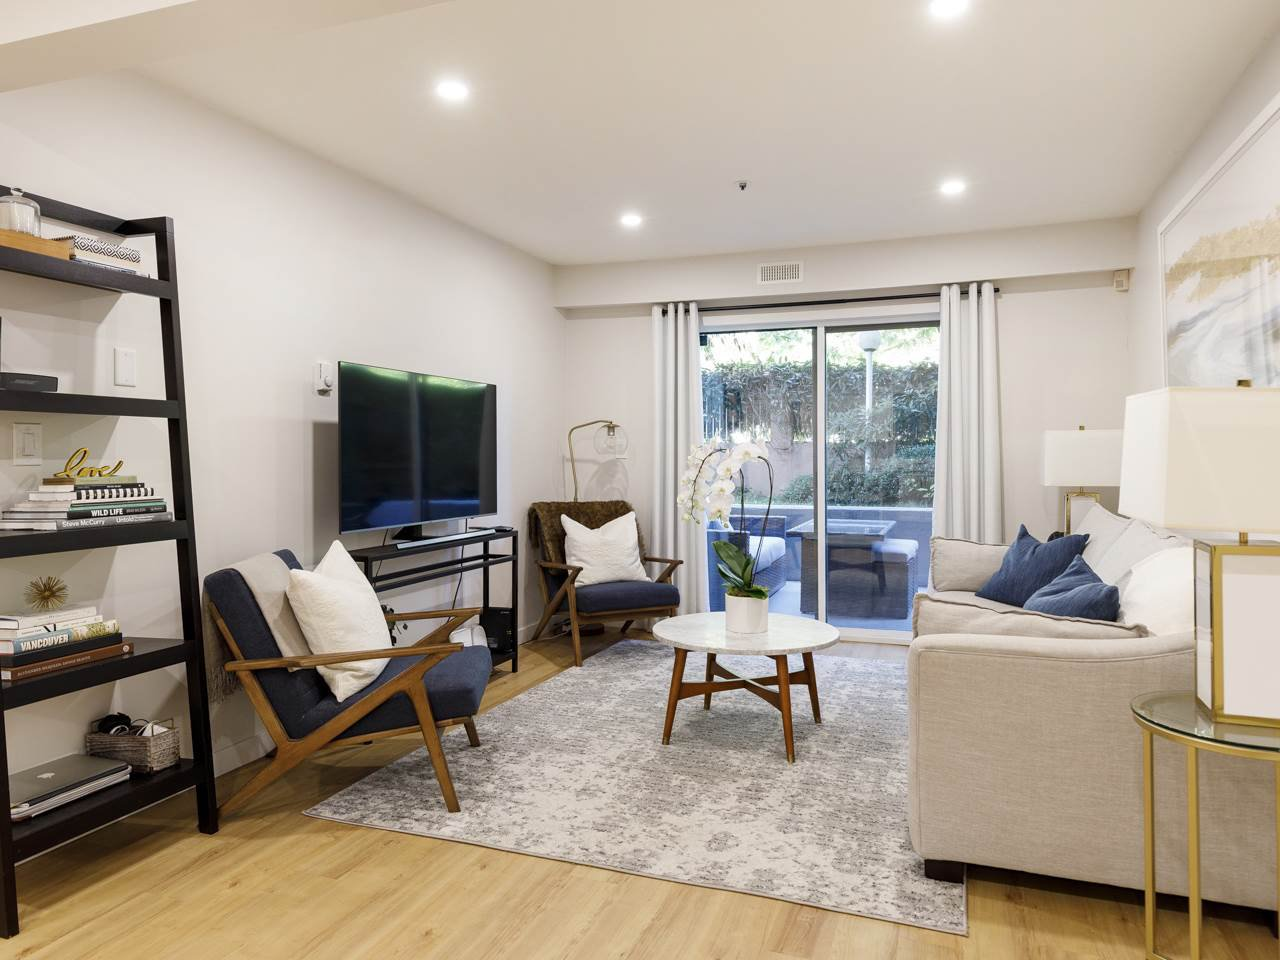 """Main Photo: 101 988 W 16TH Avenue in Vancouver: Cambie Condo for sale in """"THE OAKS"""" (Vancouver West)  : MLS®# R2498587"""